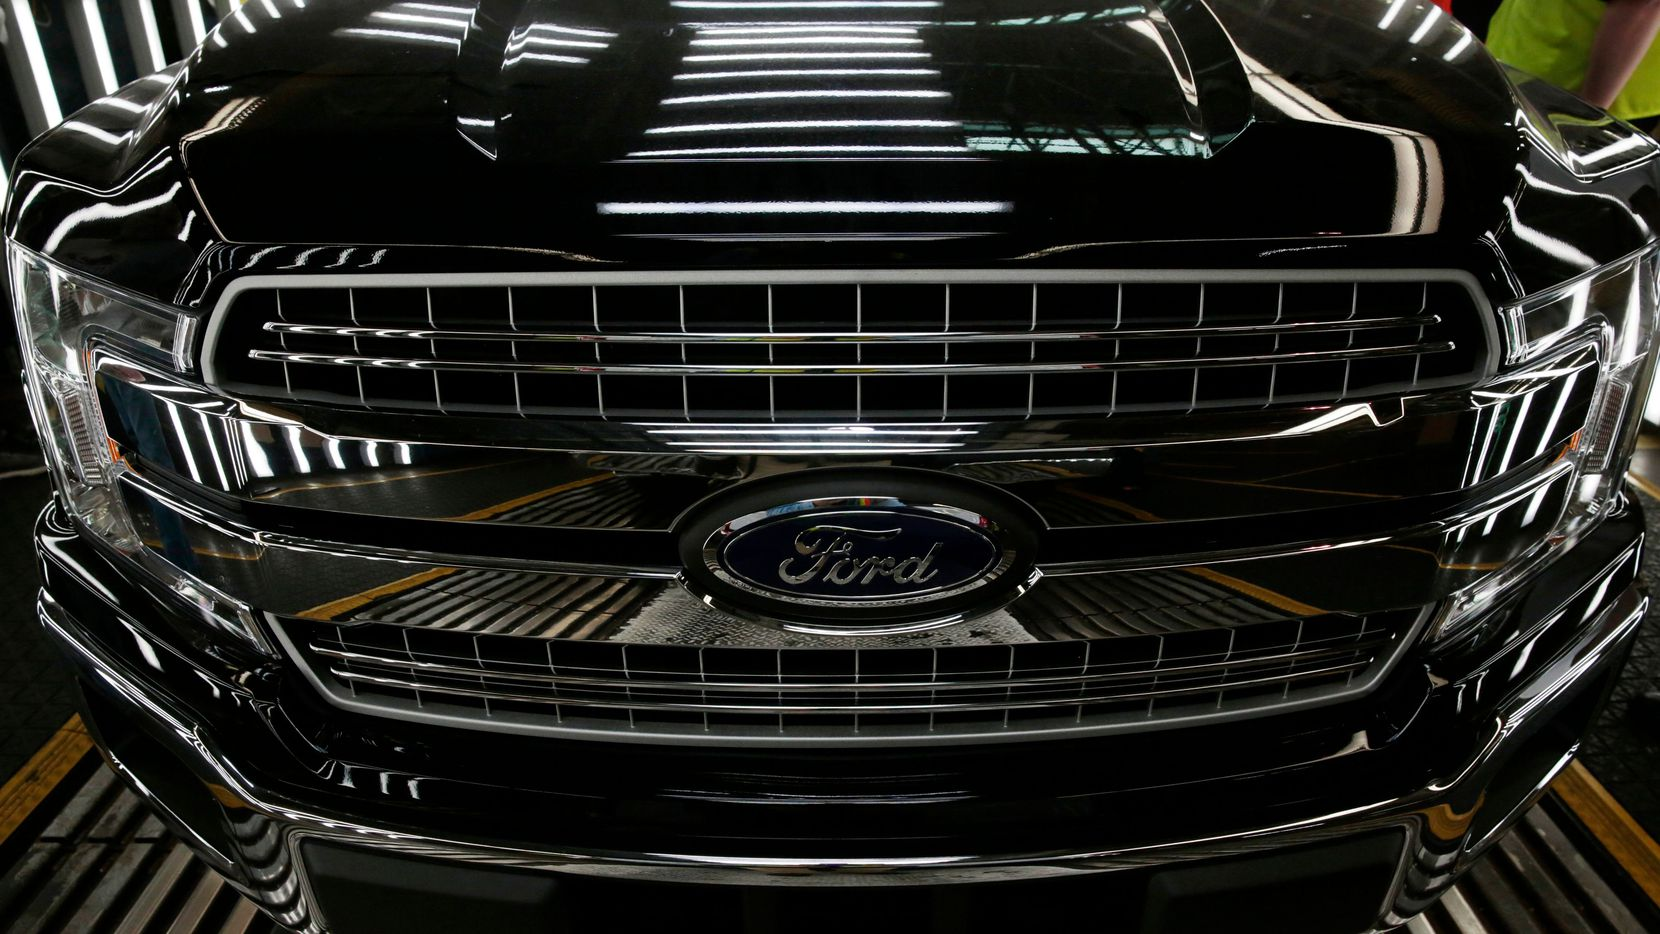 This file photo shows a Ford logo on a front bumper as Ford 2018 and 2019 F-150 trucks sit on the assembly line at the Ford Motor Company's Rouge Complex in Dearborn, Mich.